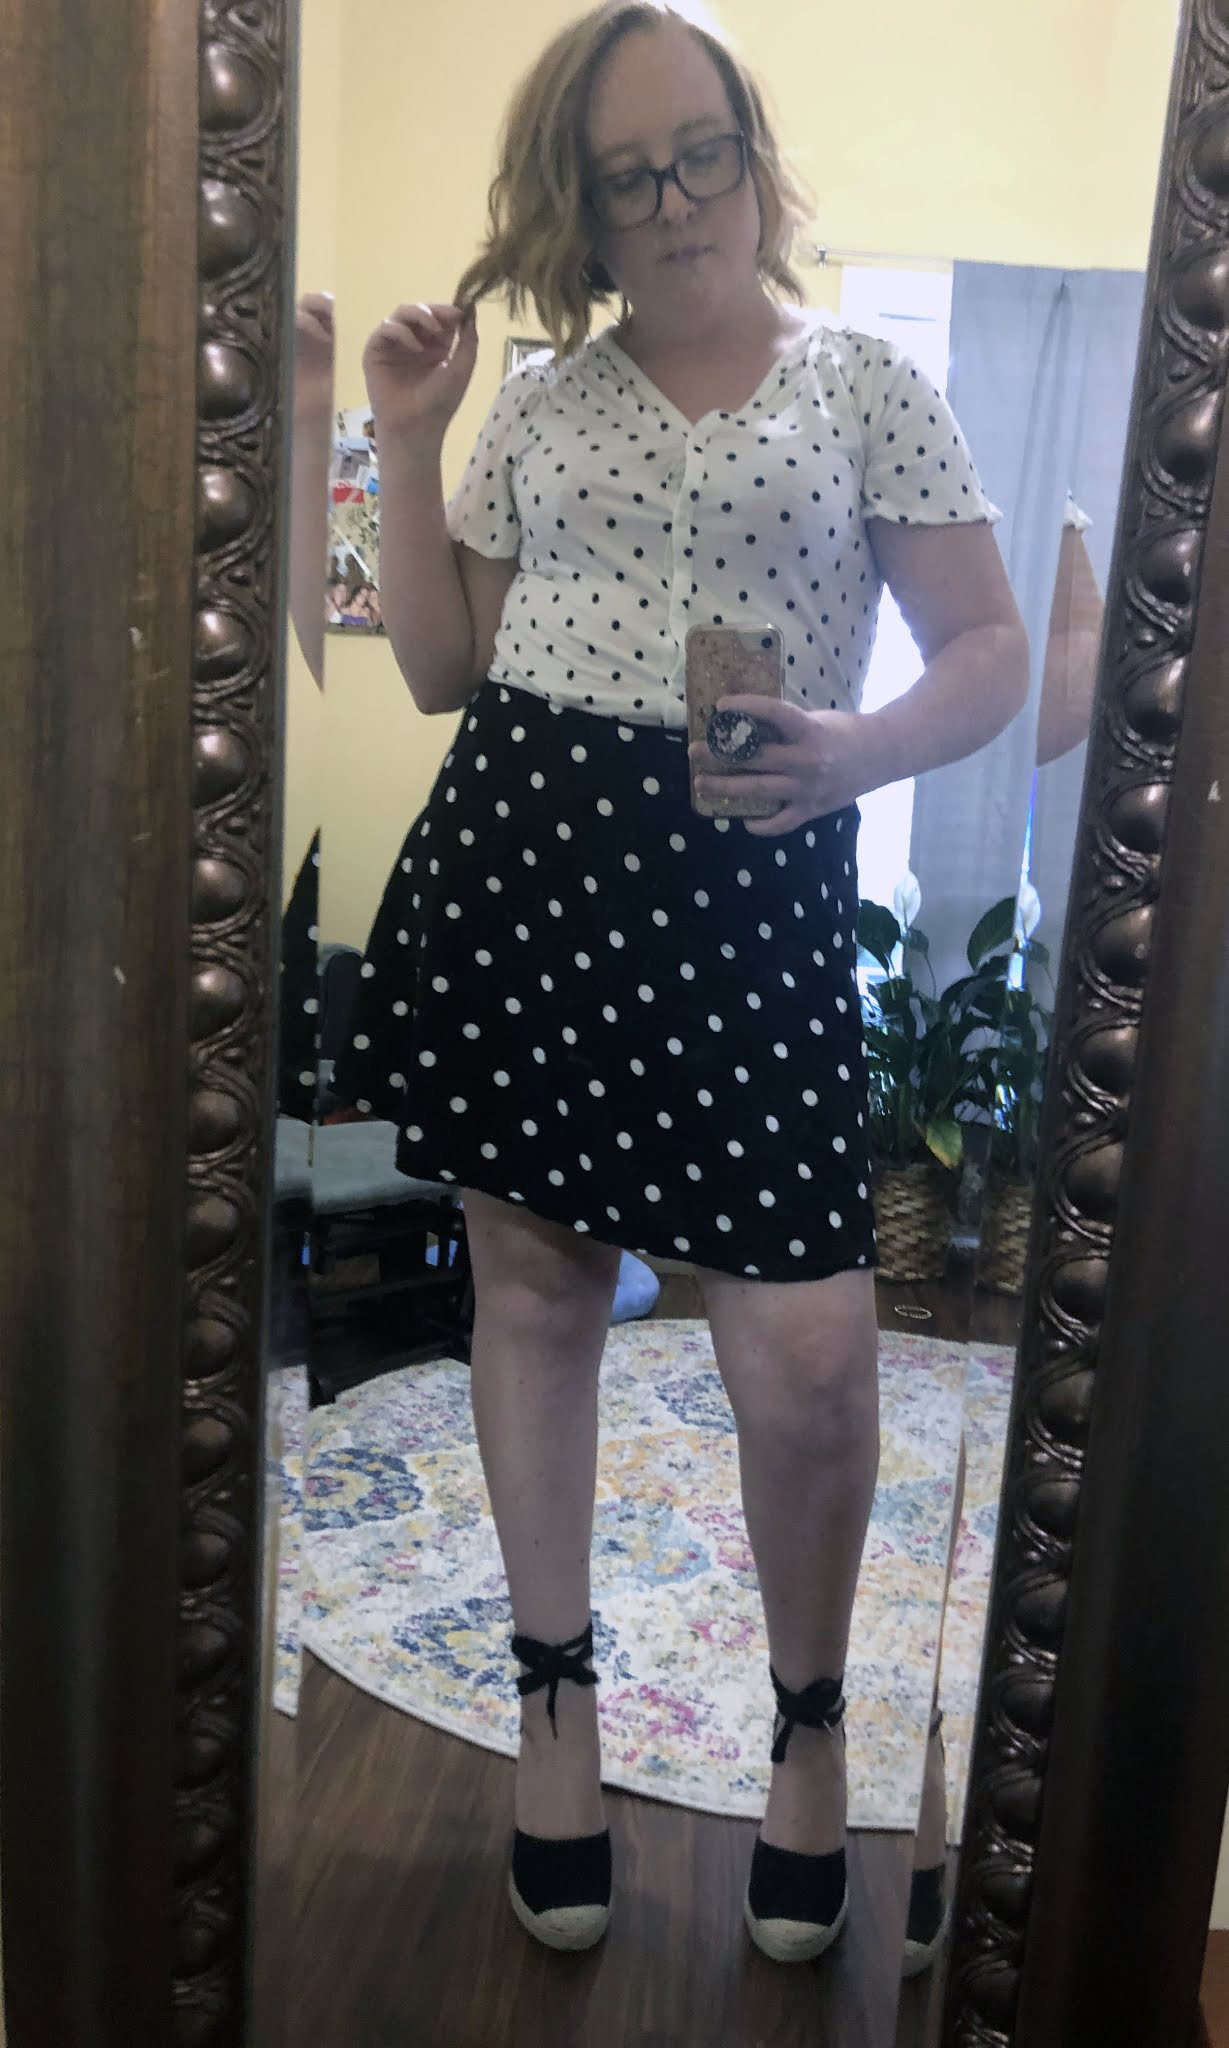 polka dots times two